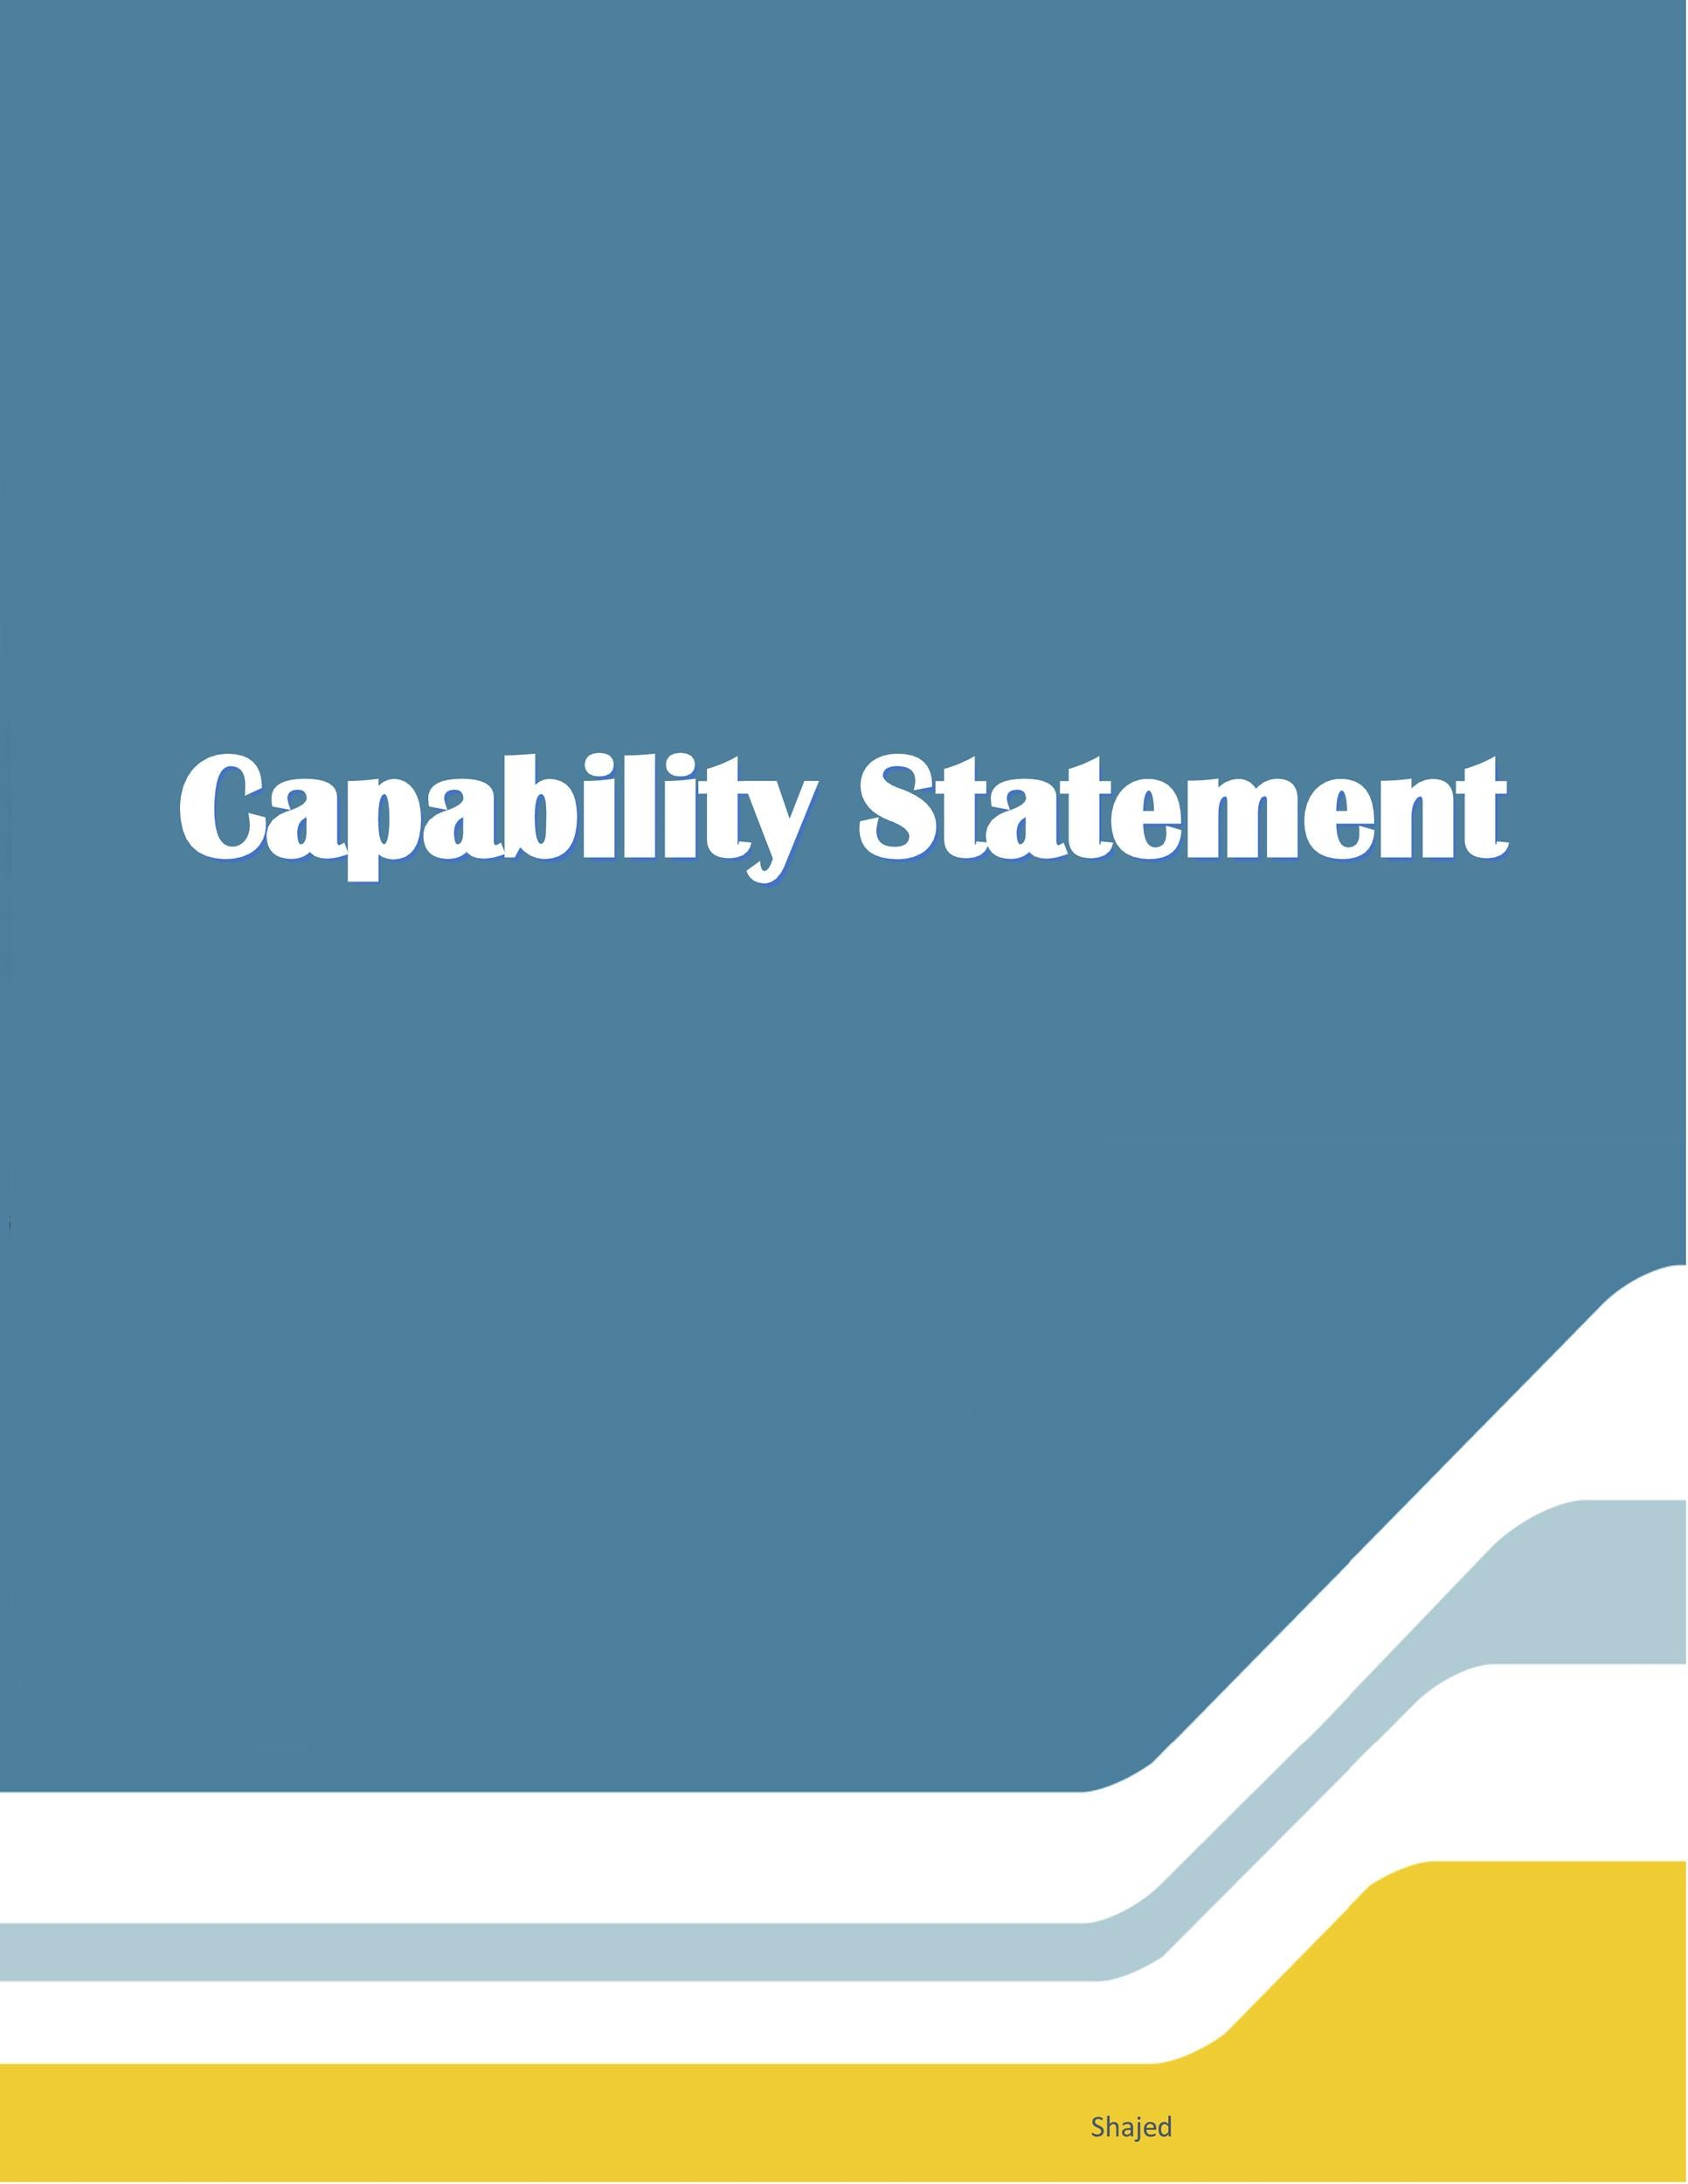 Free capability statement 07